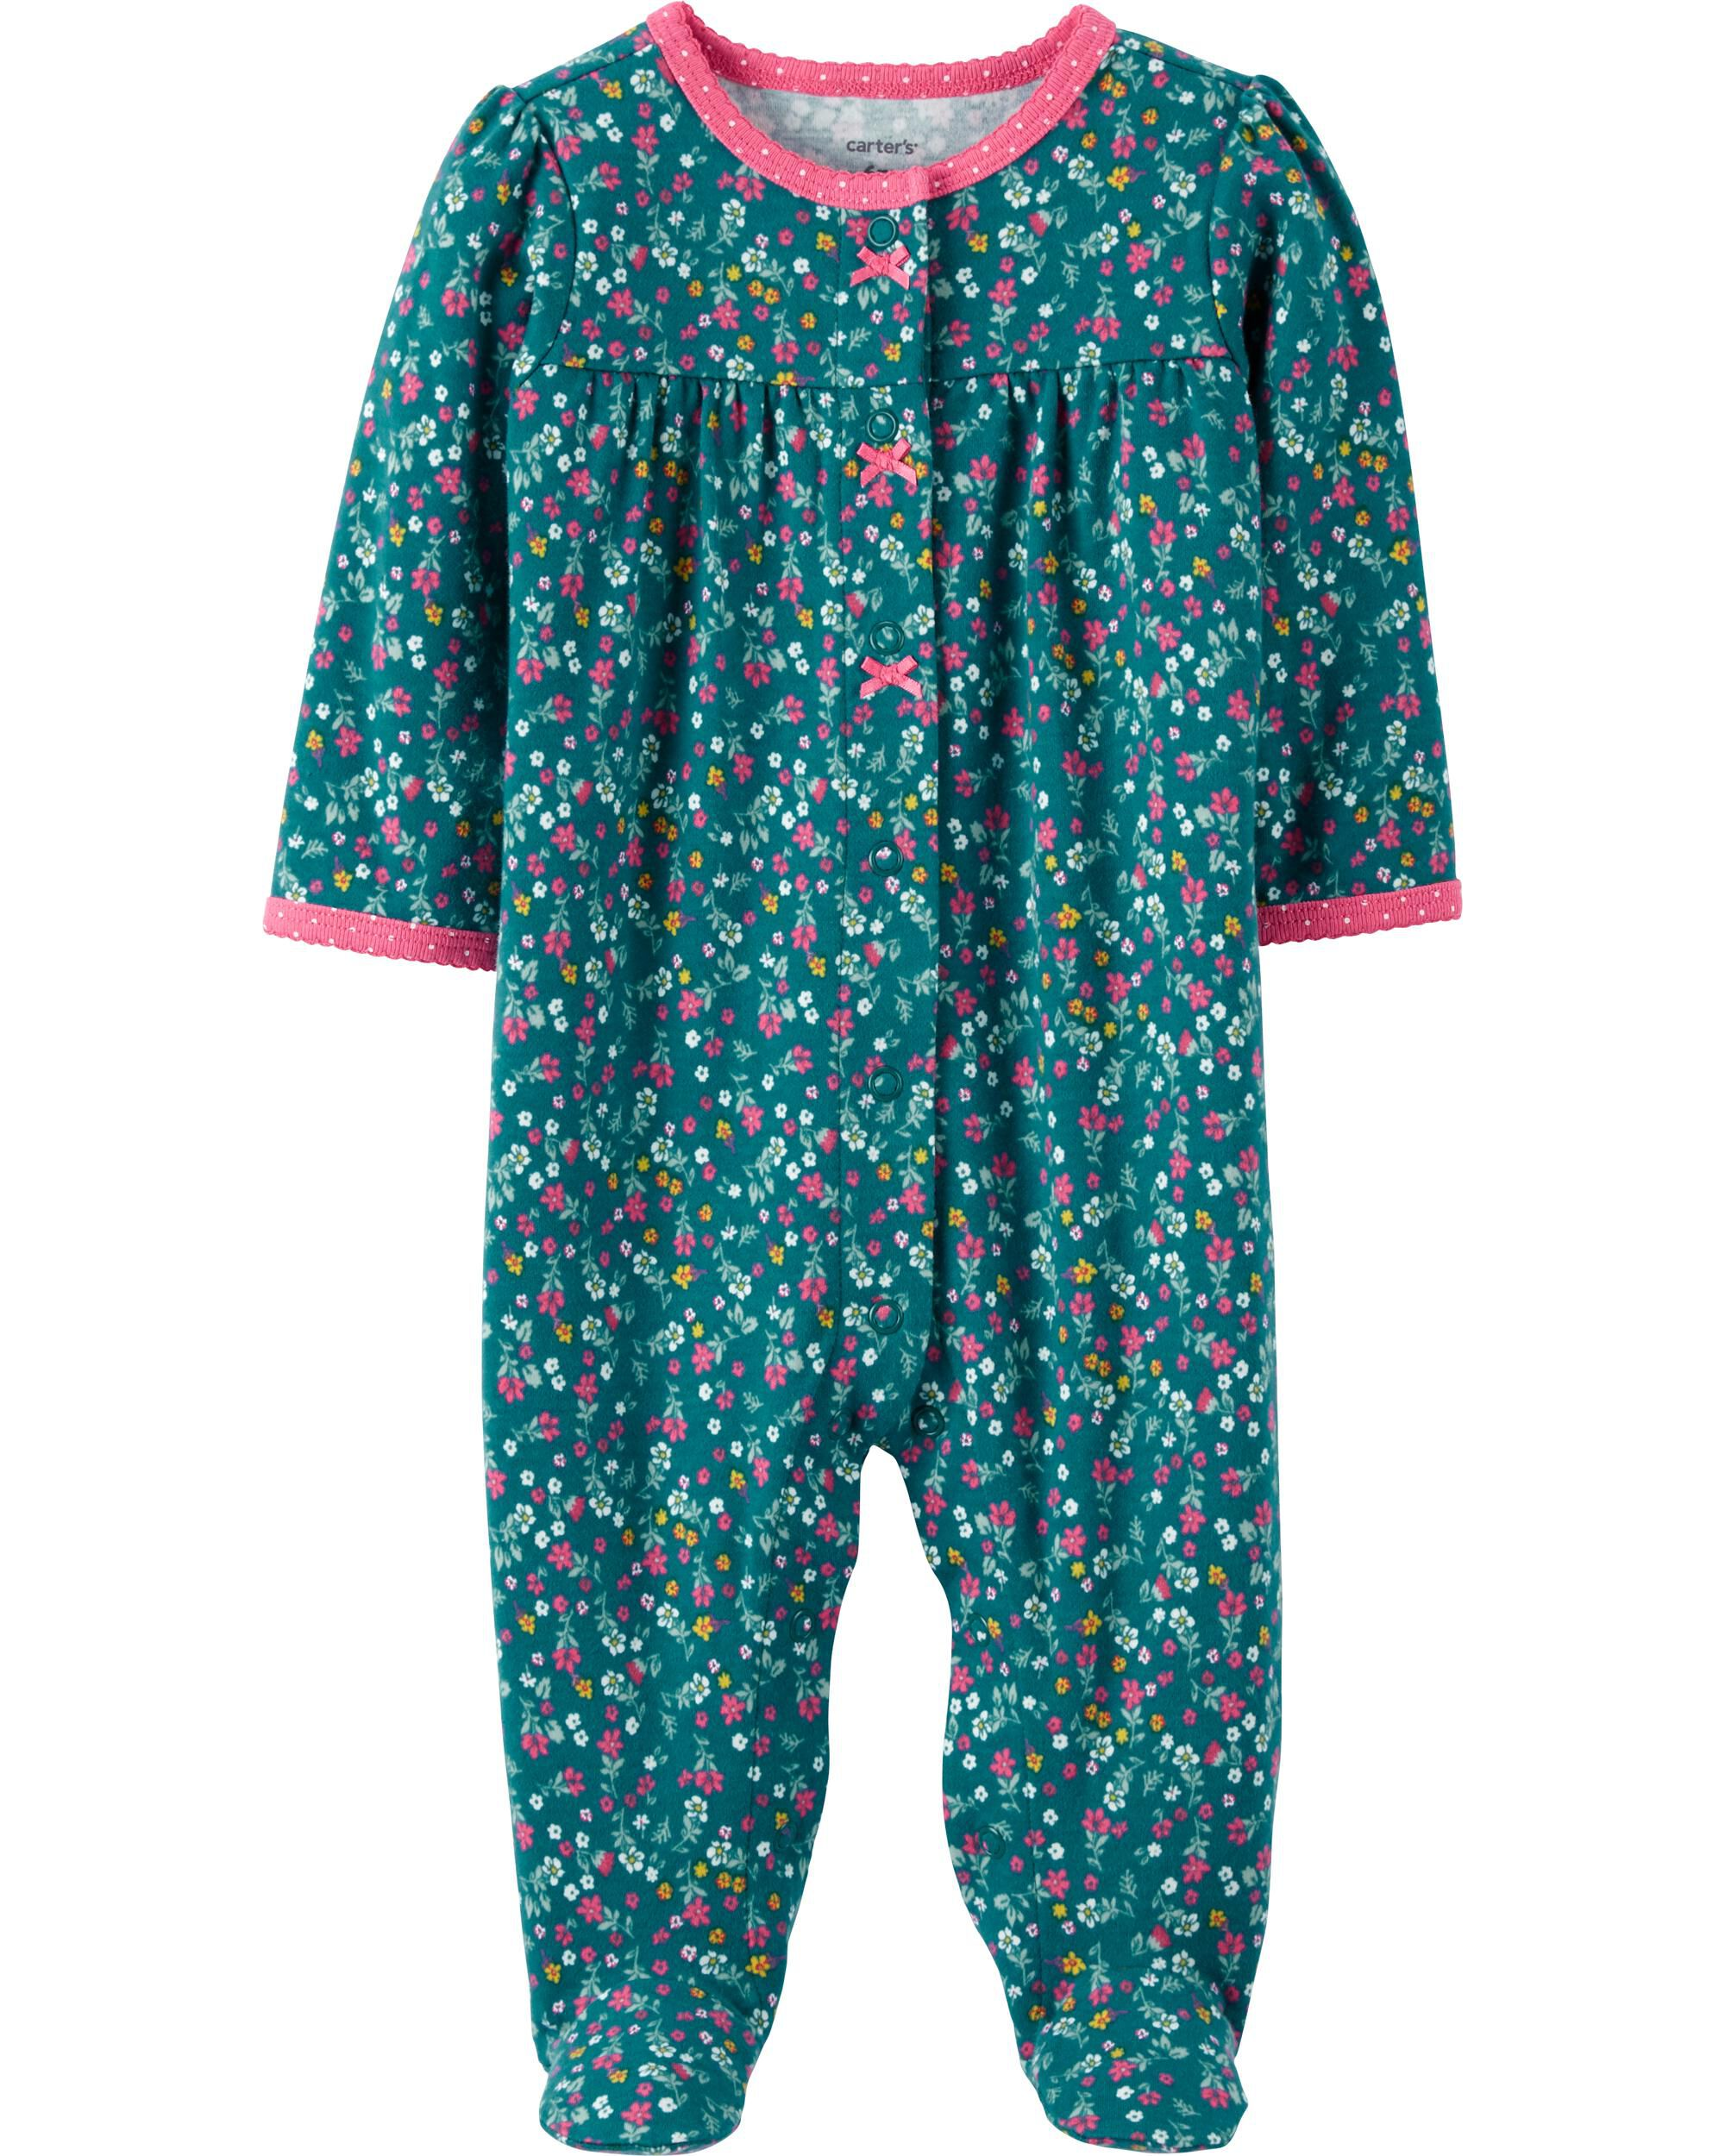 Carters Floral Snap-Up Cotton Sleep & Play